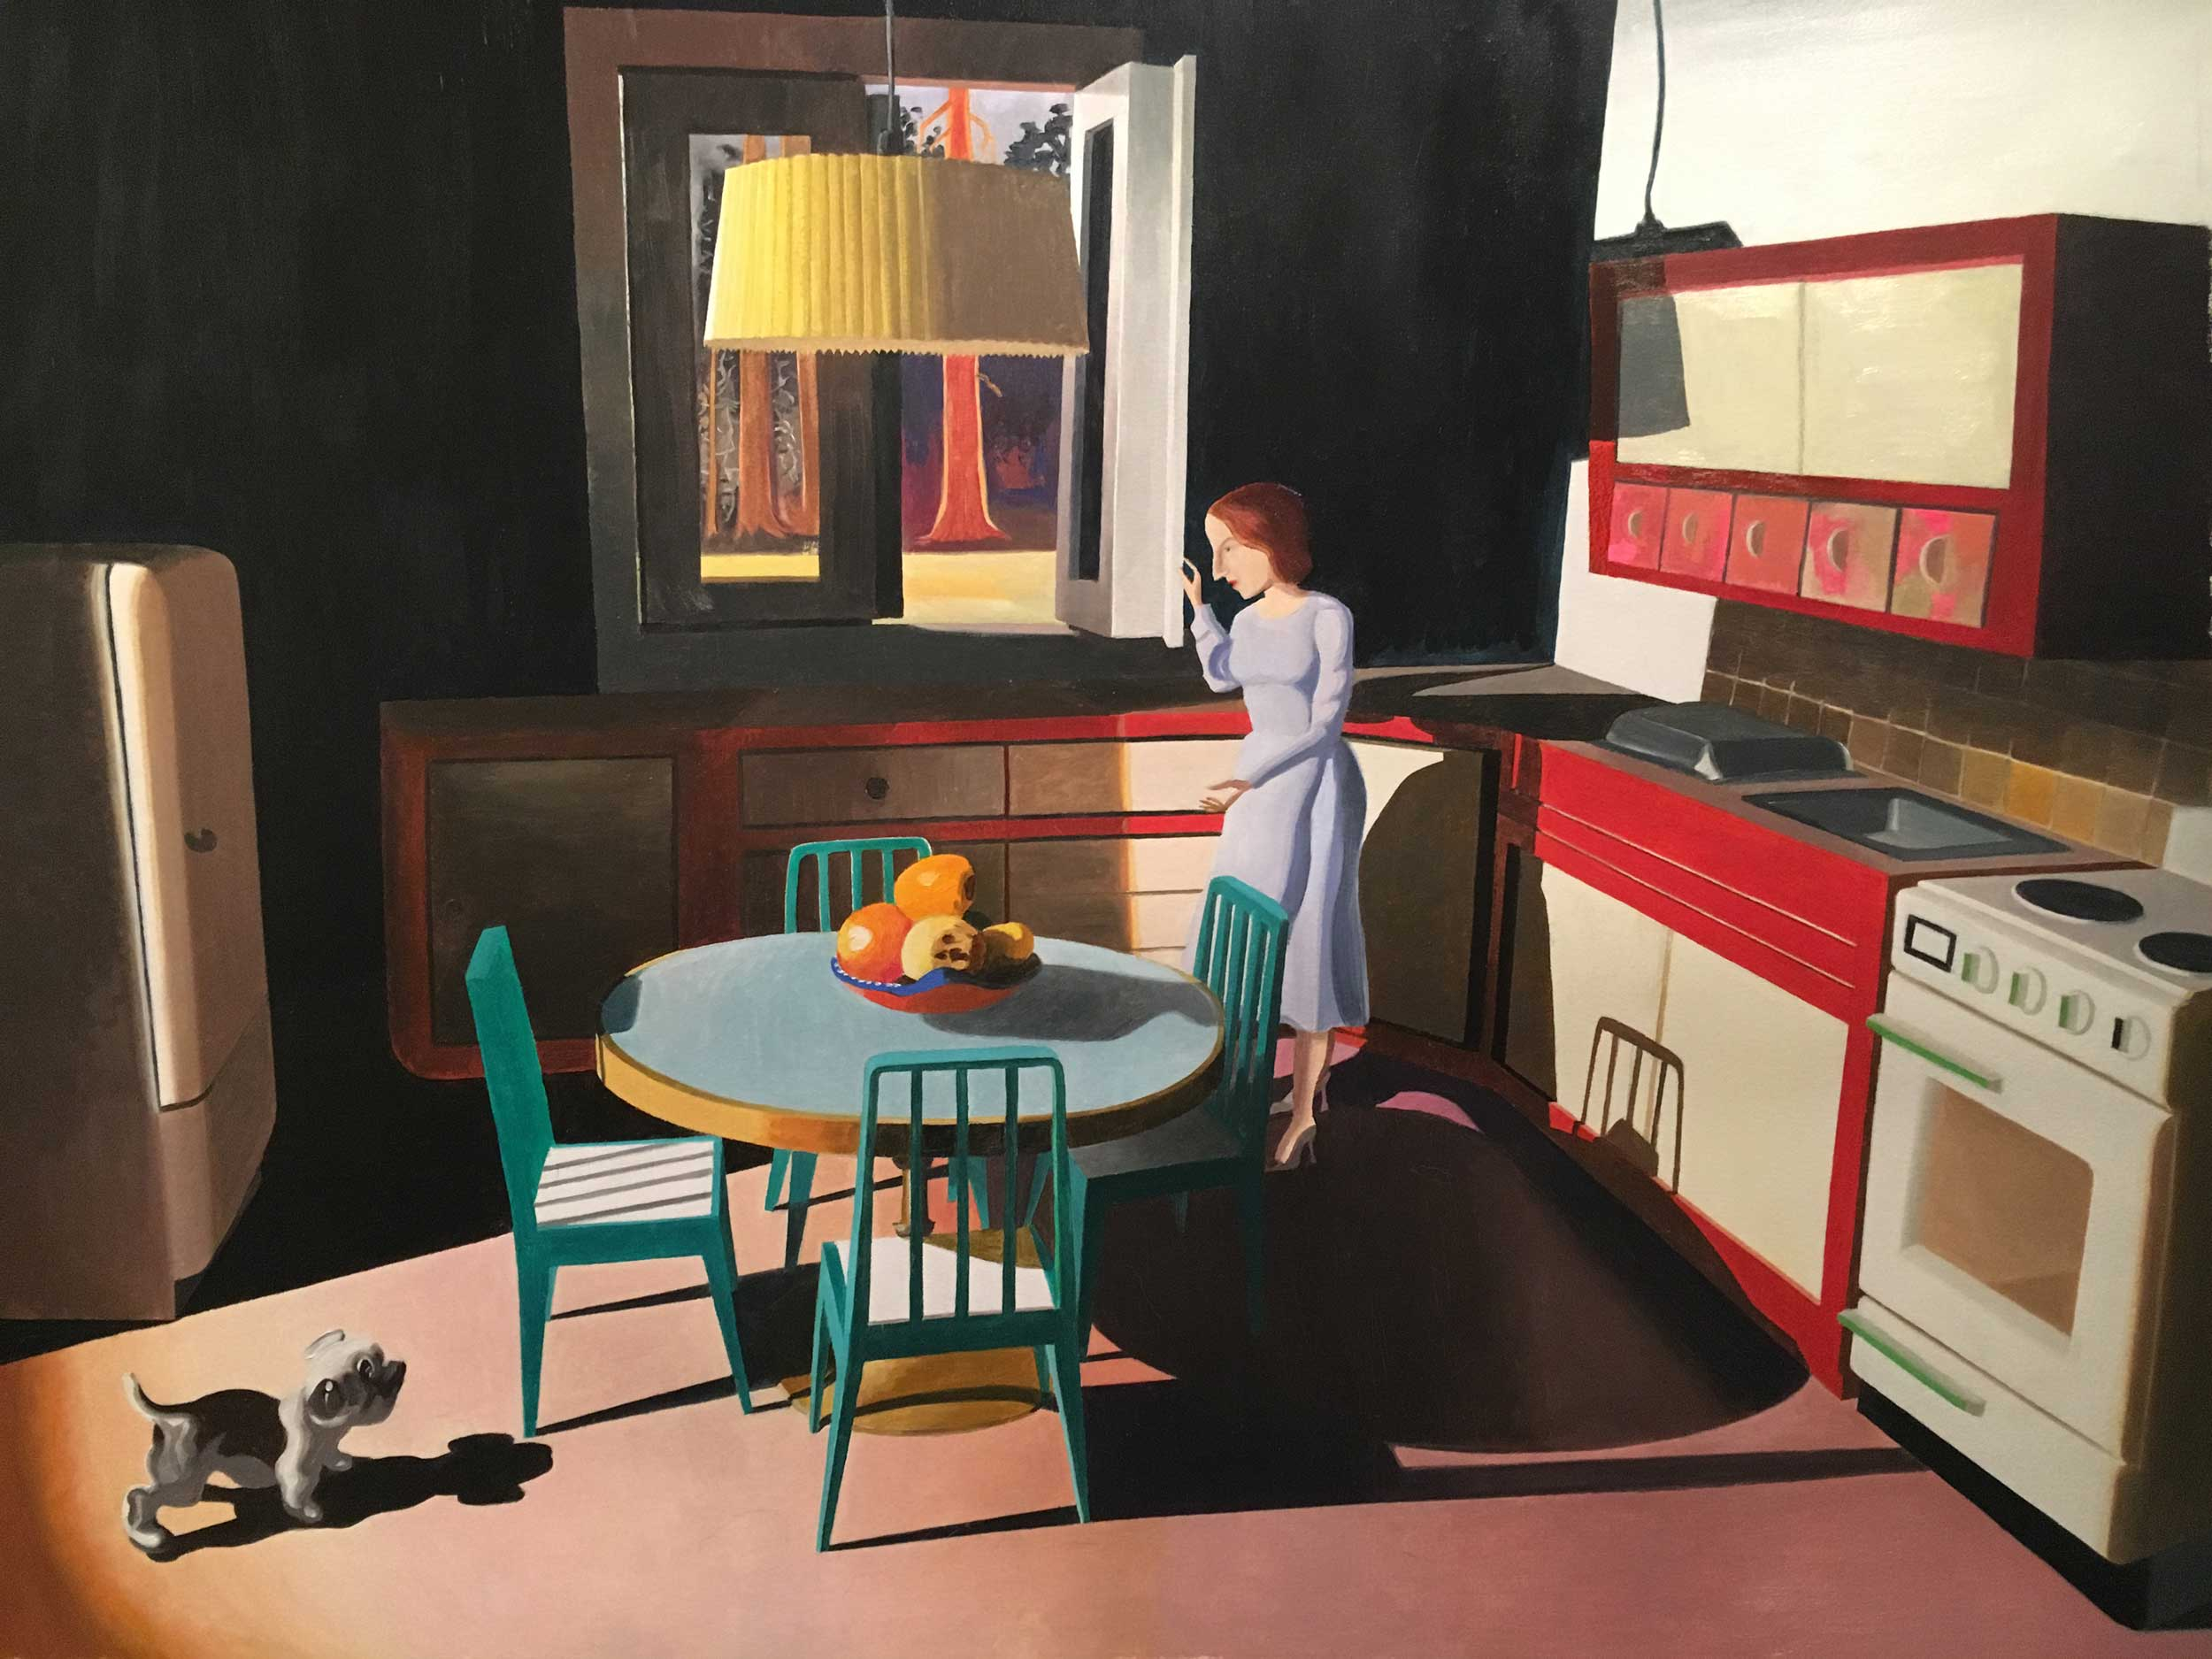 Painting of woman and dog in kitchen